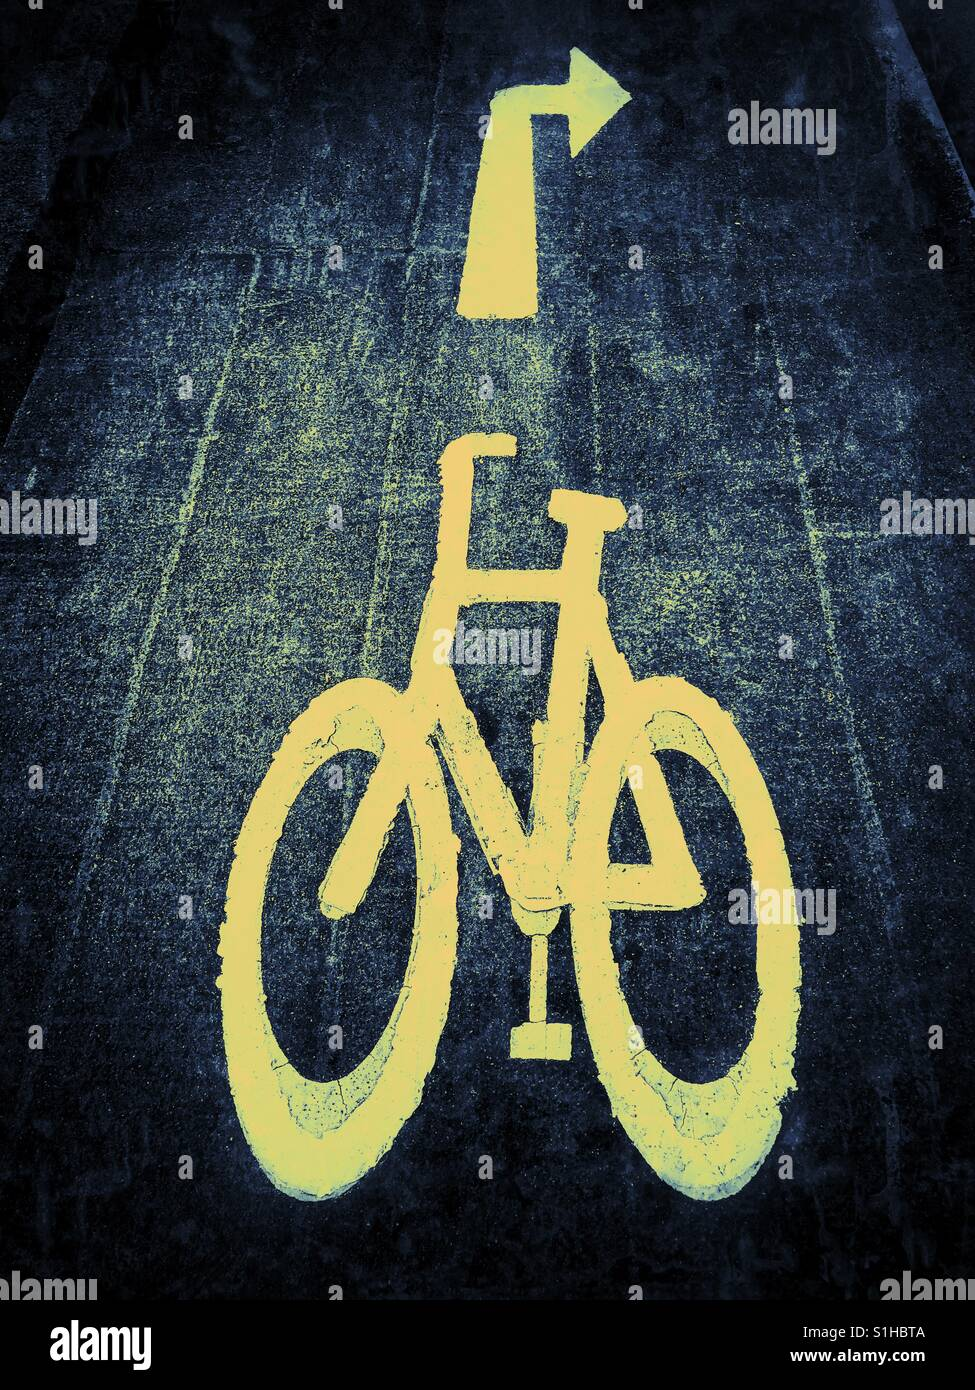 The yellow symbol sign of a bicycle - used to indicate a cycle lane. The arrow pointing right tells cyclists they - Stock Image